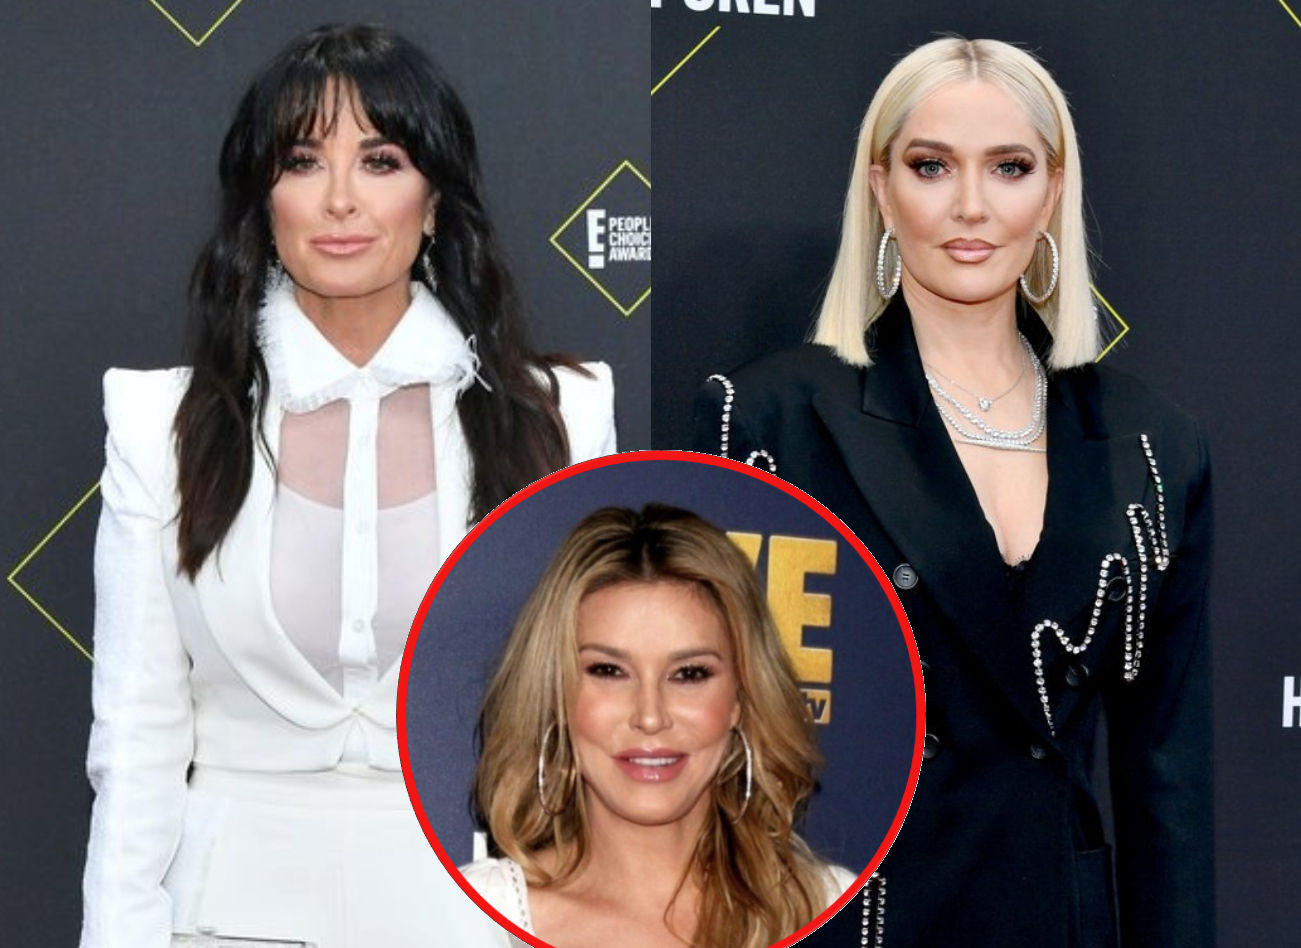 RHOBH's Kyle Richards Reveals Where She Stands With Erika Jayne After Mauricio and PK's Rant as Brandi Glanville Reacts to the 'Scary' Text Story